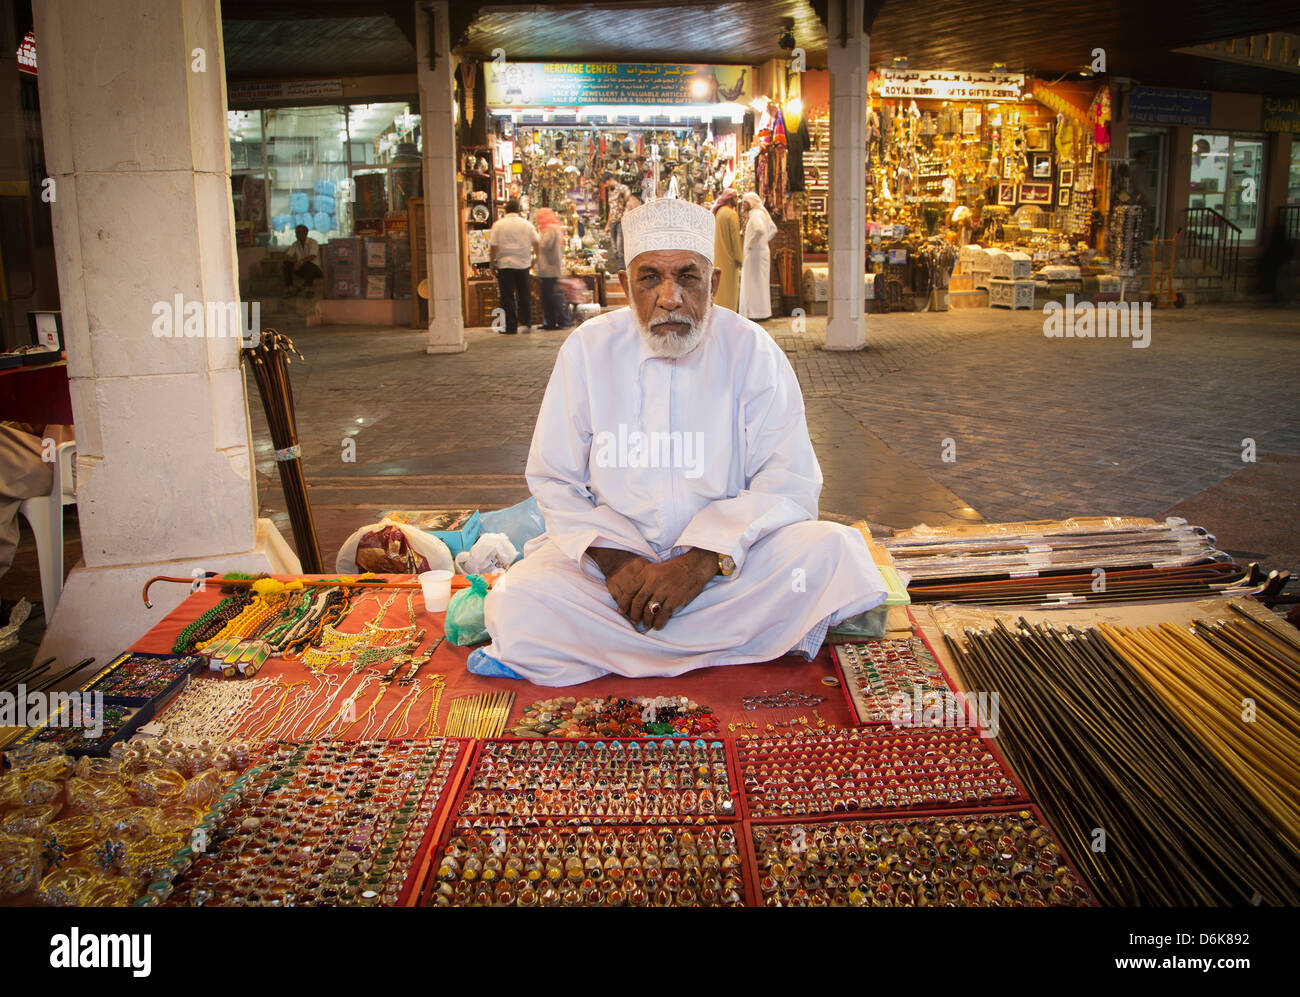 Merchant in Muscat's Souk, Muscat, Oman, Middle East - Stock Image